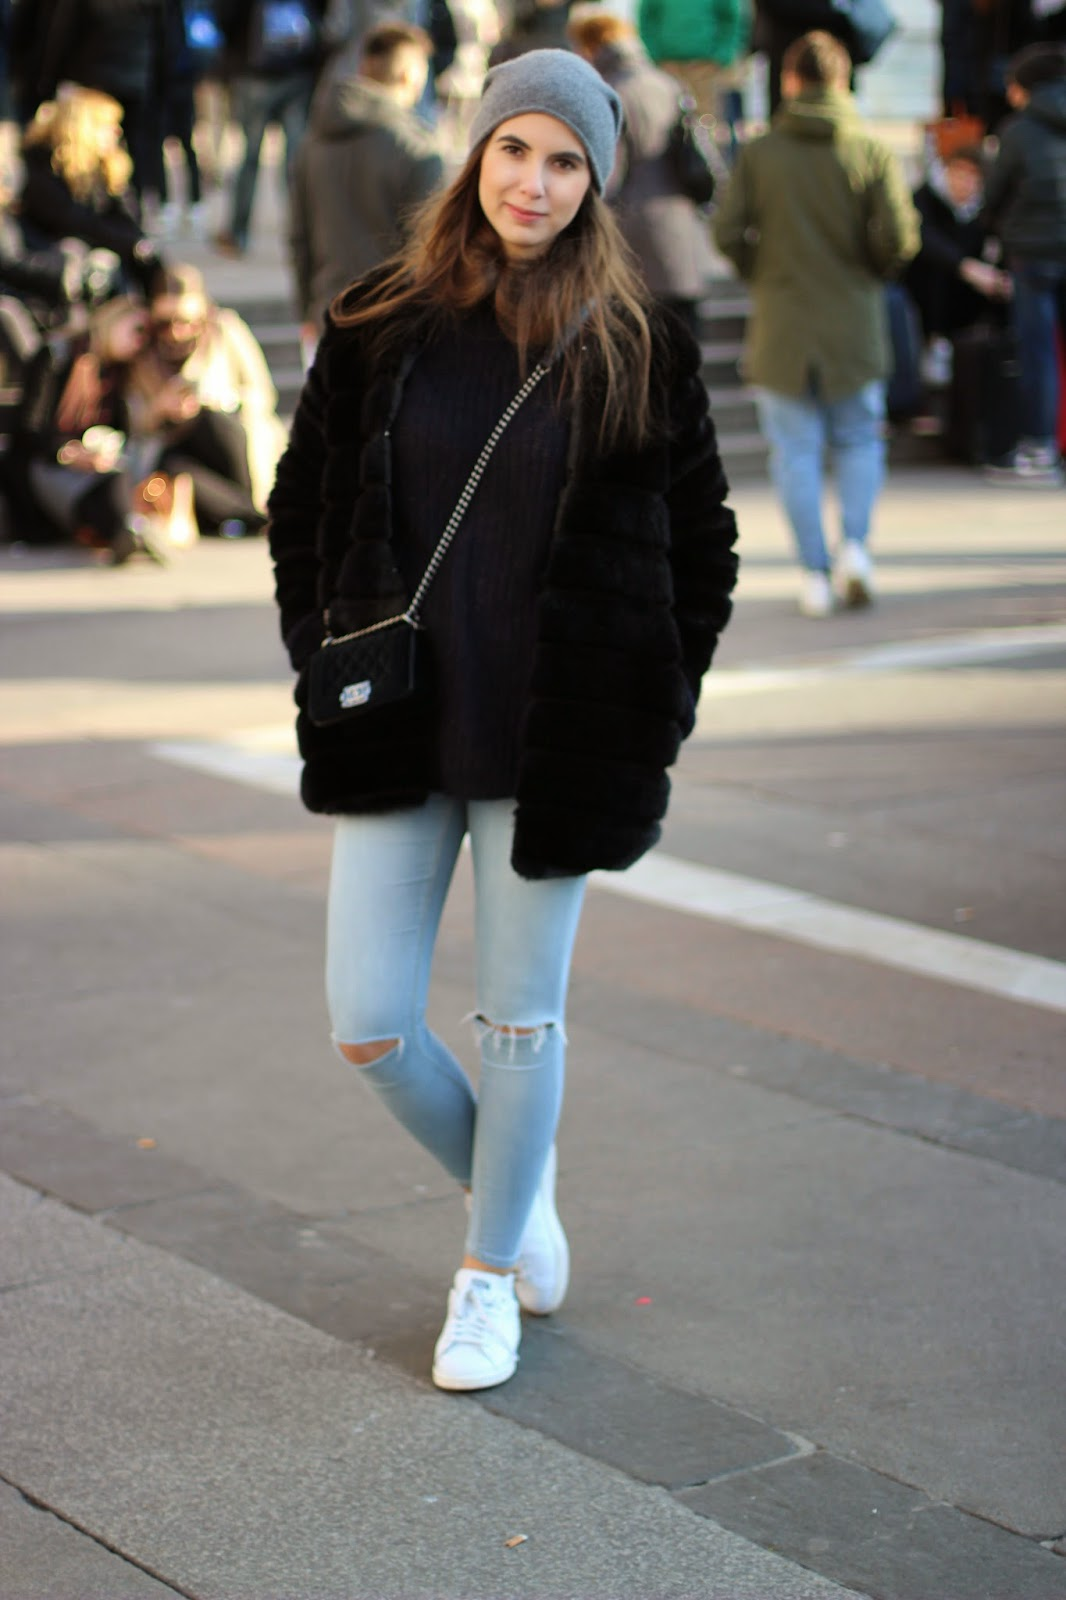 4b479b7b4d31 Arifashionthread - Luxembourg Fashion and Lifestyle Blog  City look